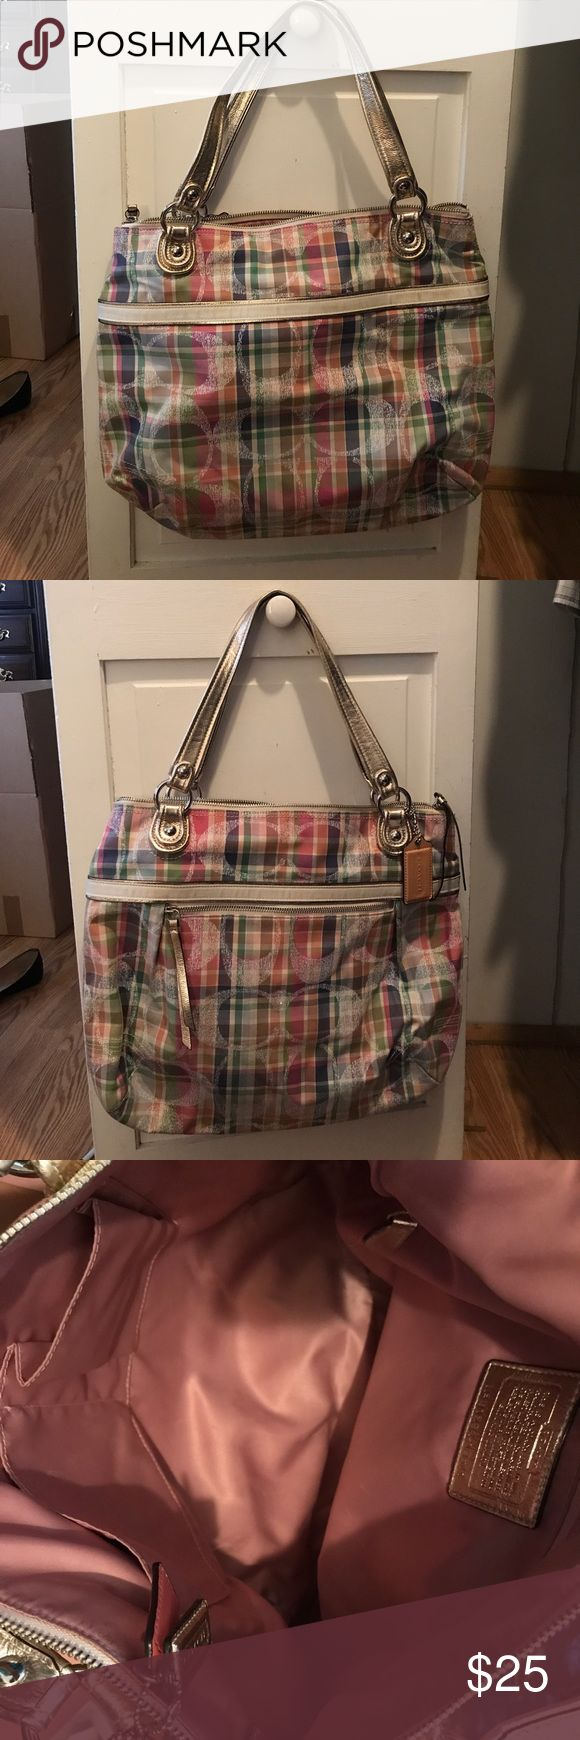 Coach tote bag Coach tote bag. Used once. Great condition. Multicolored Coach Bags Totes